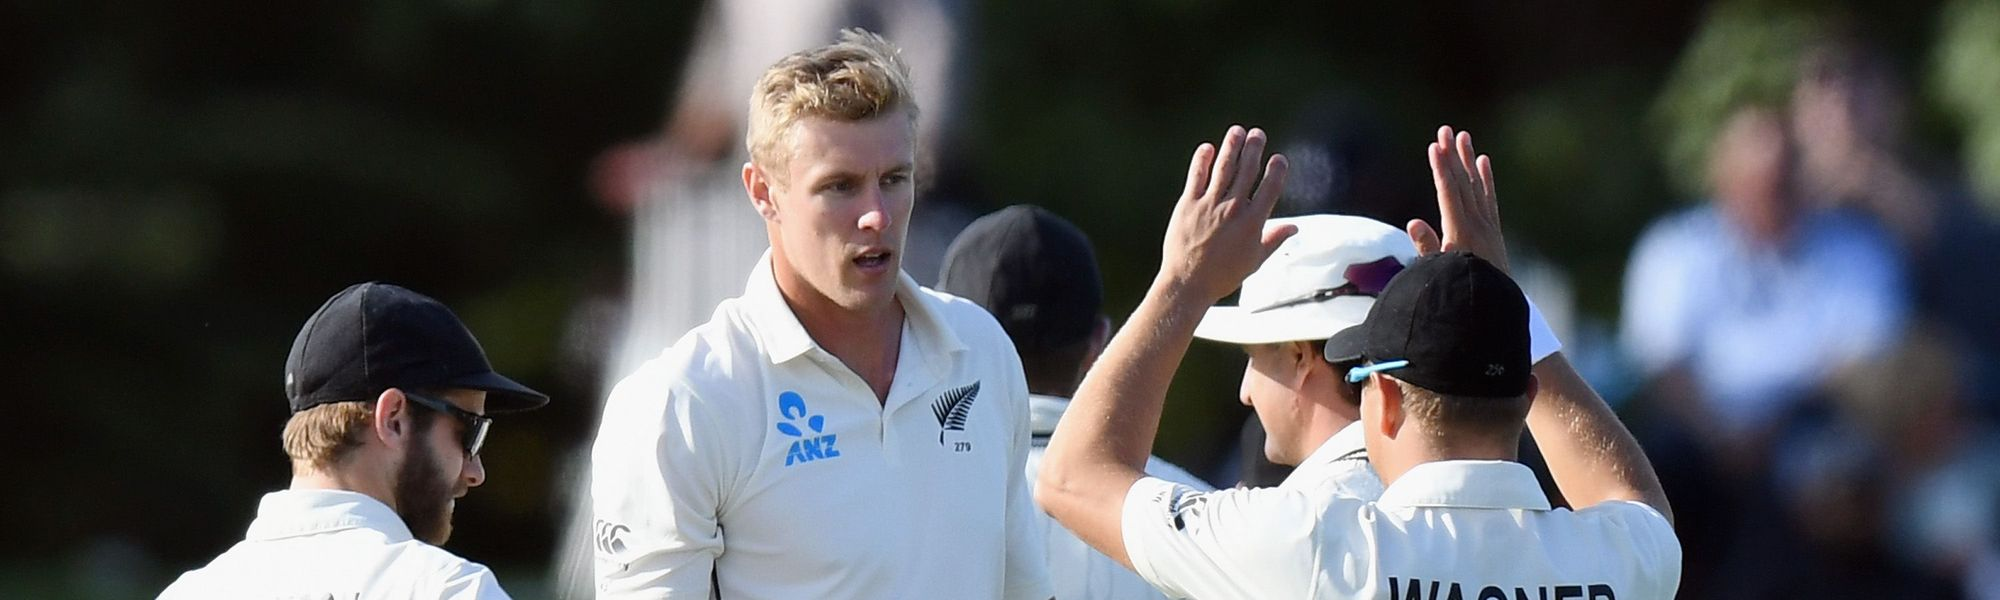 Debutant paceman Kyle Jamieson's success underlined New Zealand's dominance